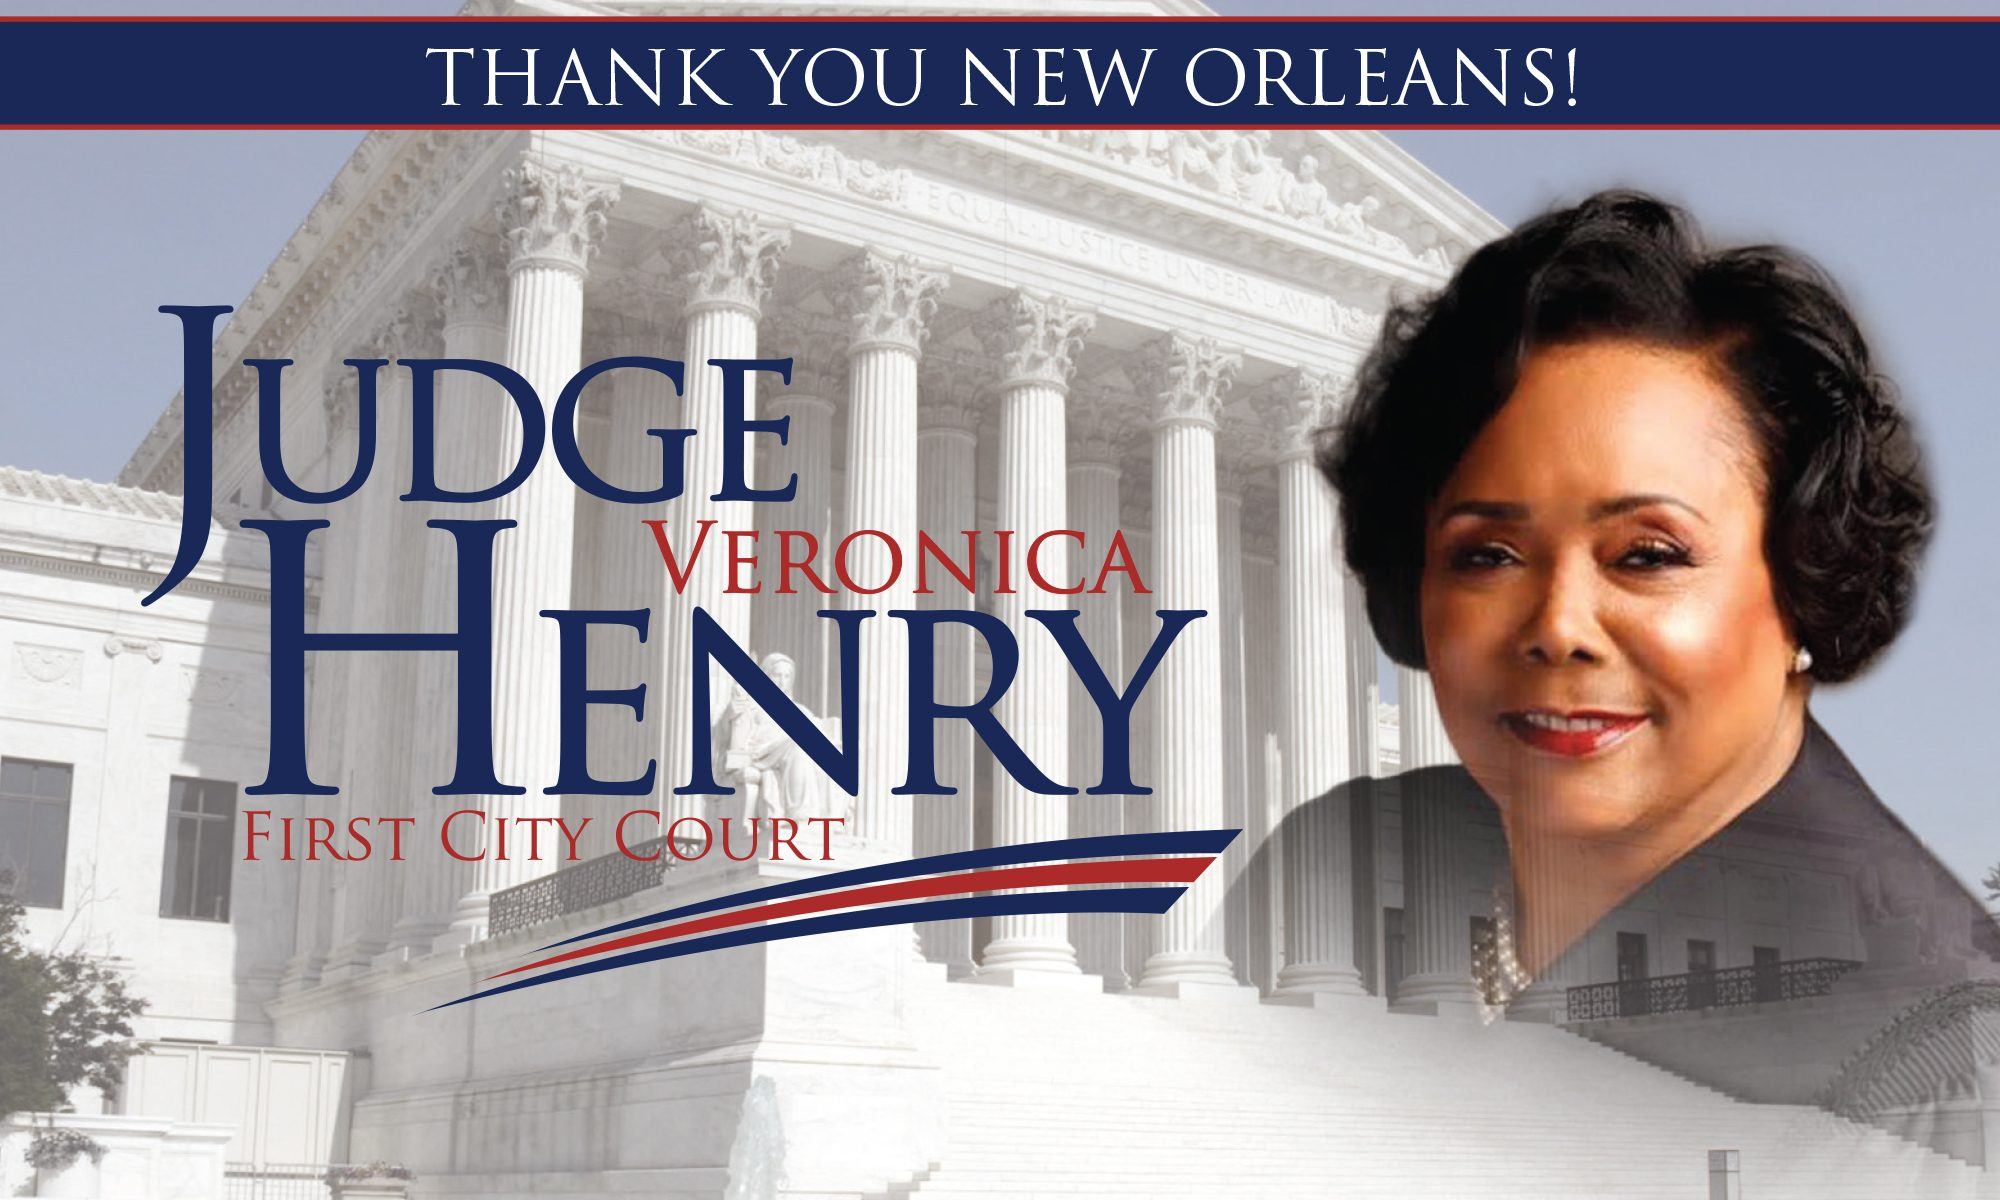 Judge Veronica E. Henry